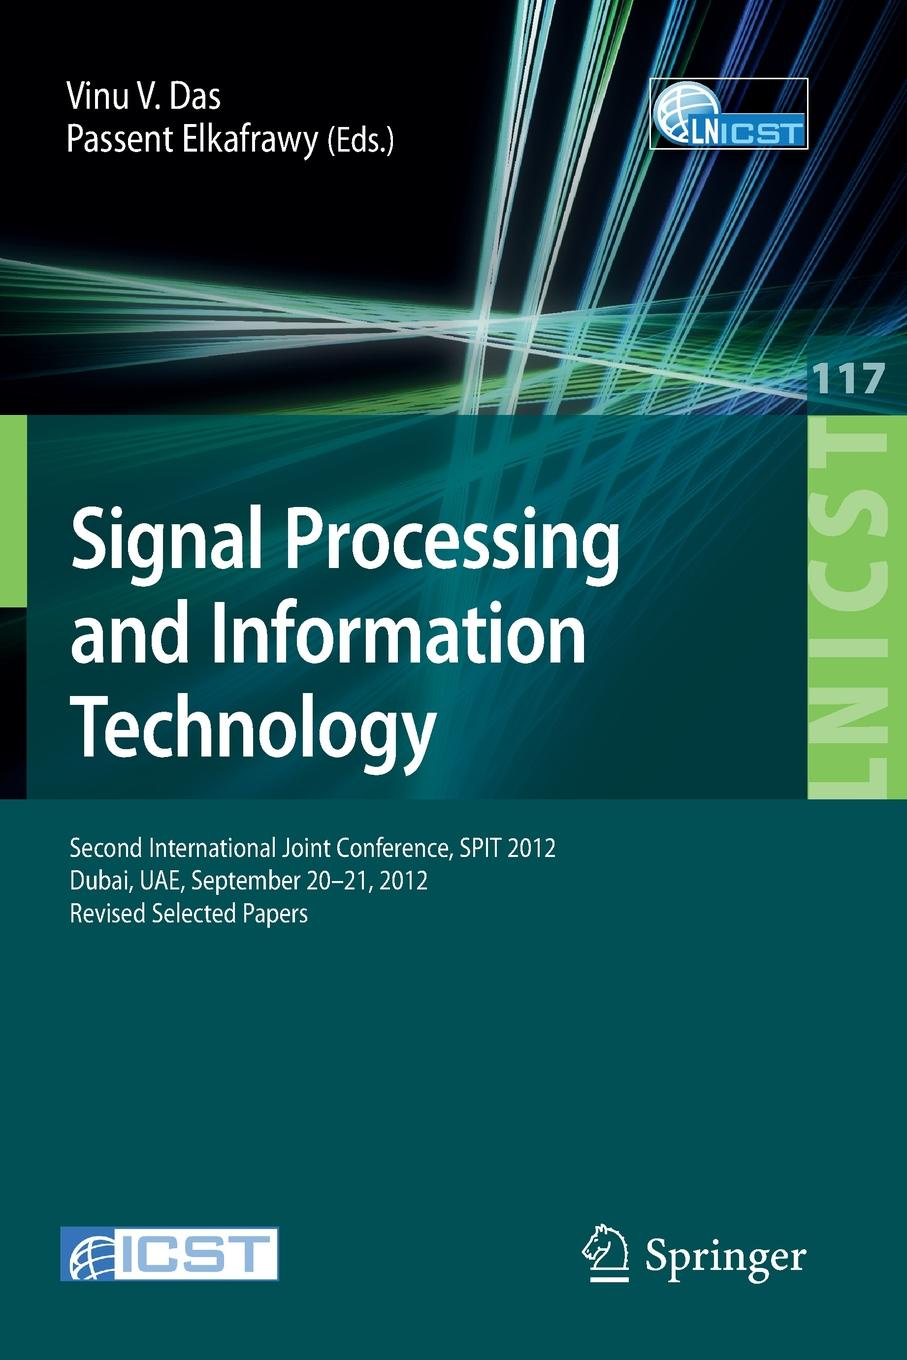 Signal Processing and Information Technology. Second International Joint Conference, SPIT 2012, Dubai, UAE, September 20-21, 2012, Revised Selected Papers cross national information and communication technology policies and practices in education revised second edition pb